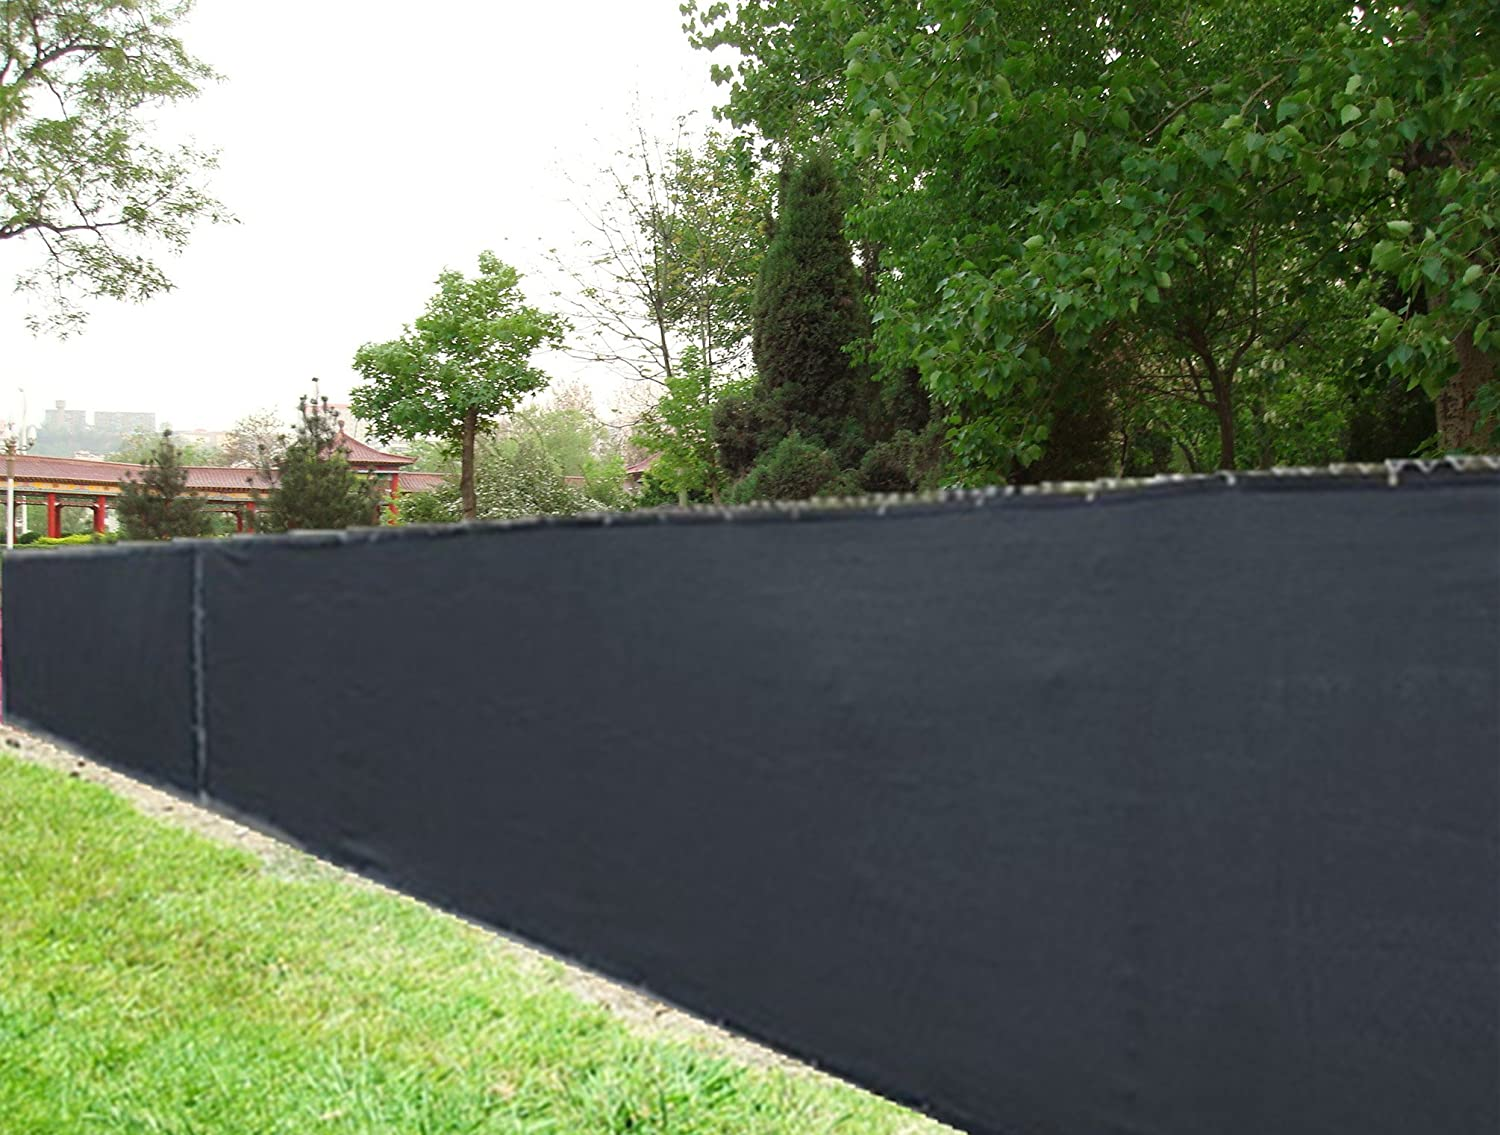 8 X 50 Black Knitted Polyethylene Privacy Fence Screen 85 Blockage Garden Outdoor